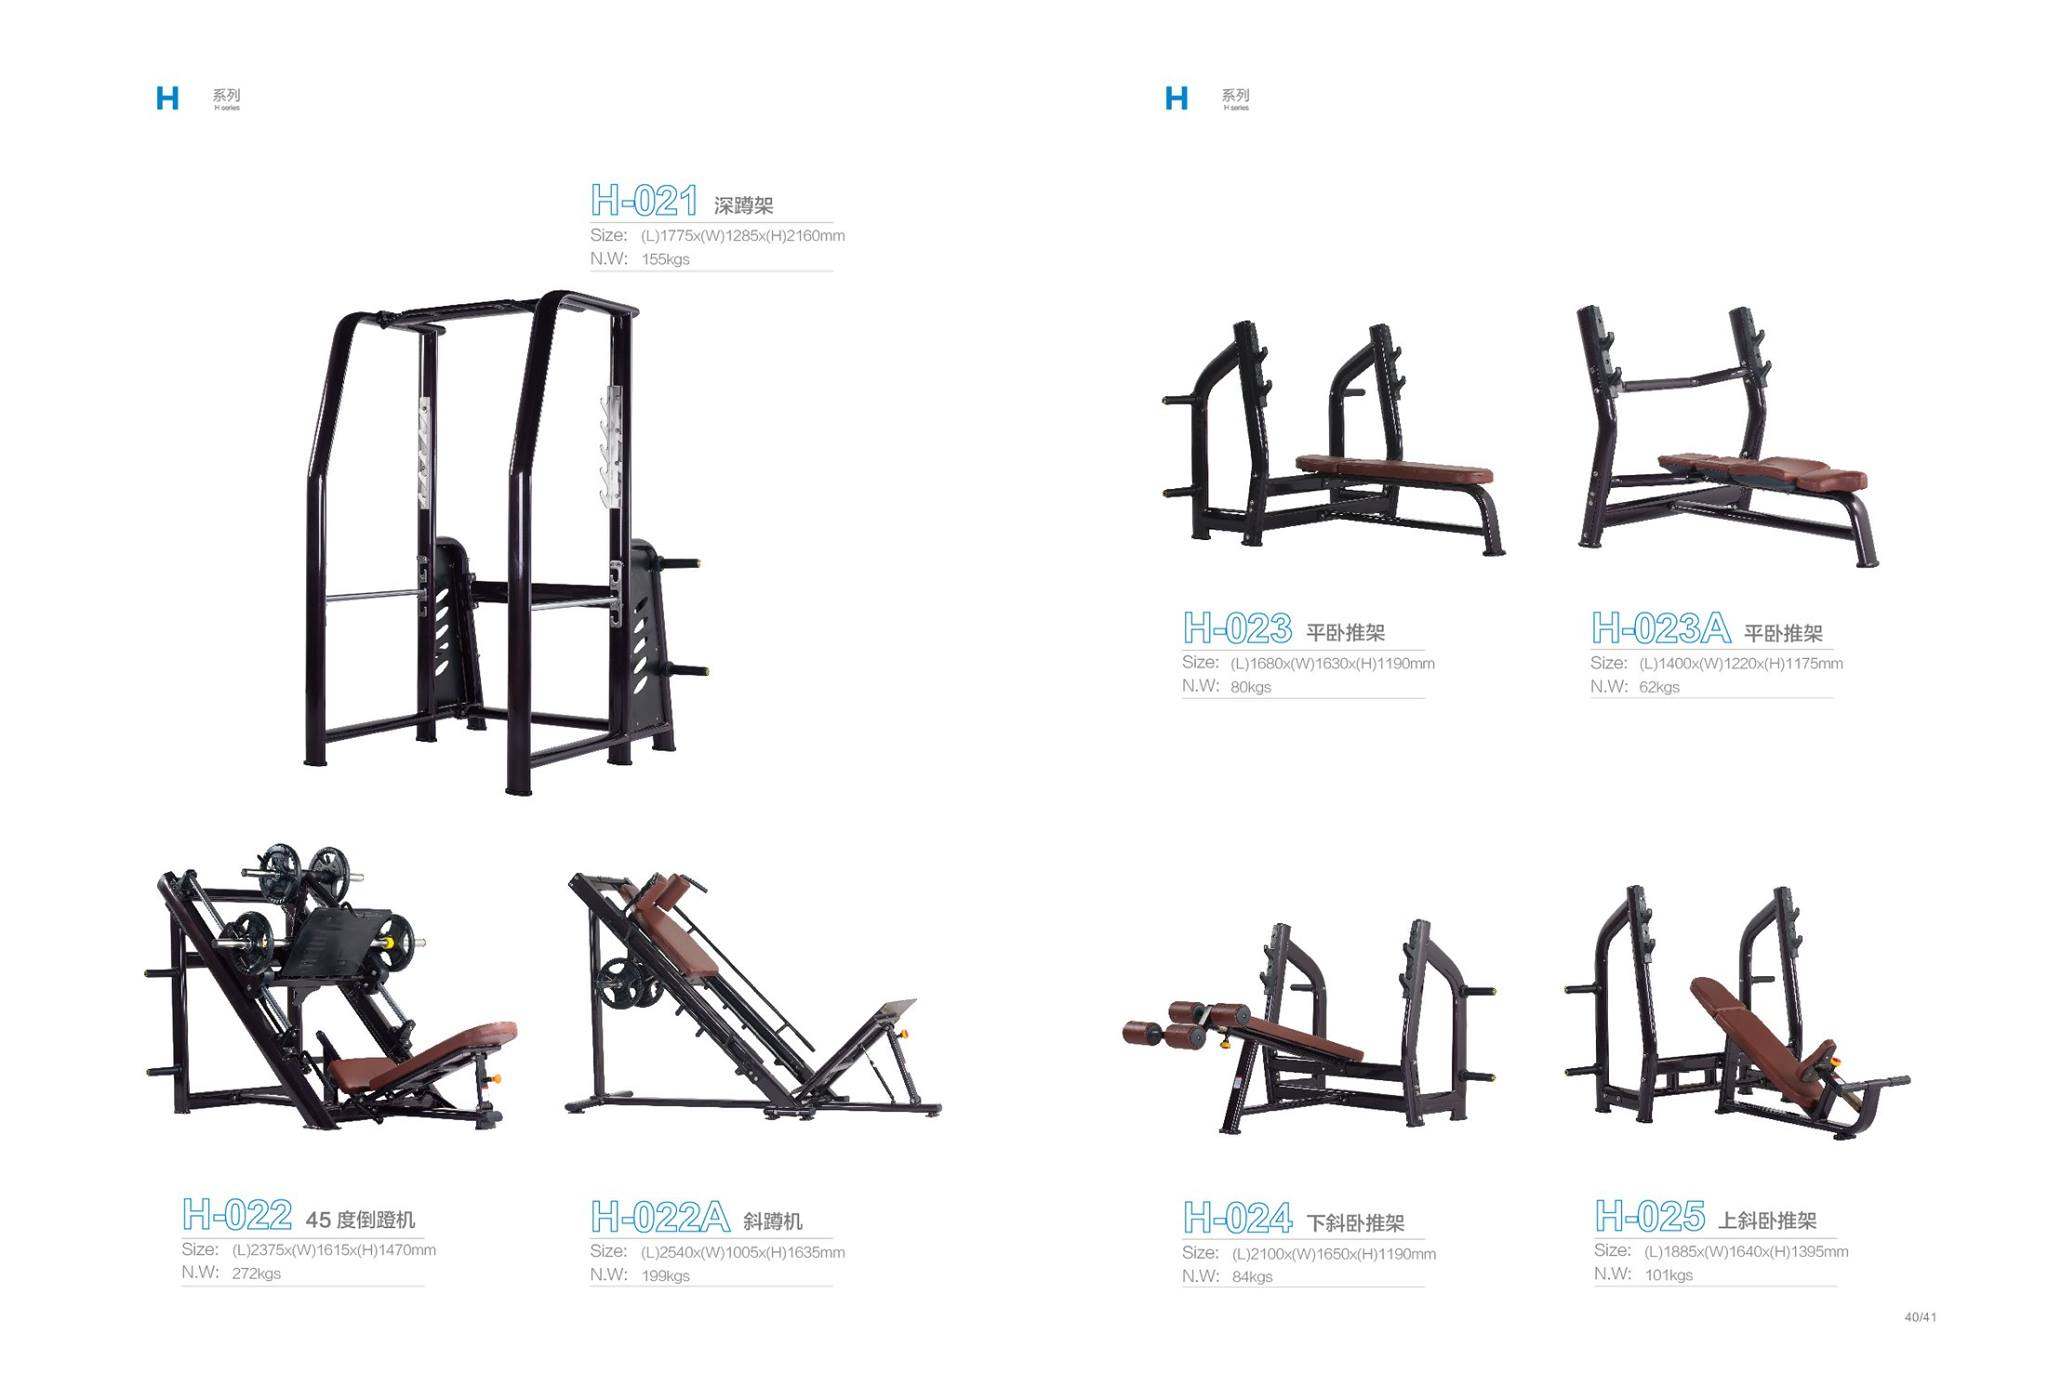 2048x1399 imported gym equipment manufacturer in india syndicate gym